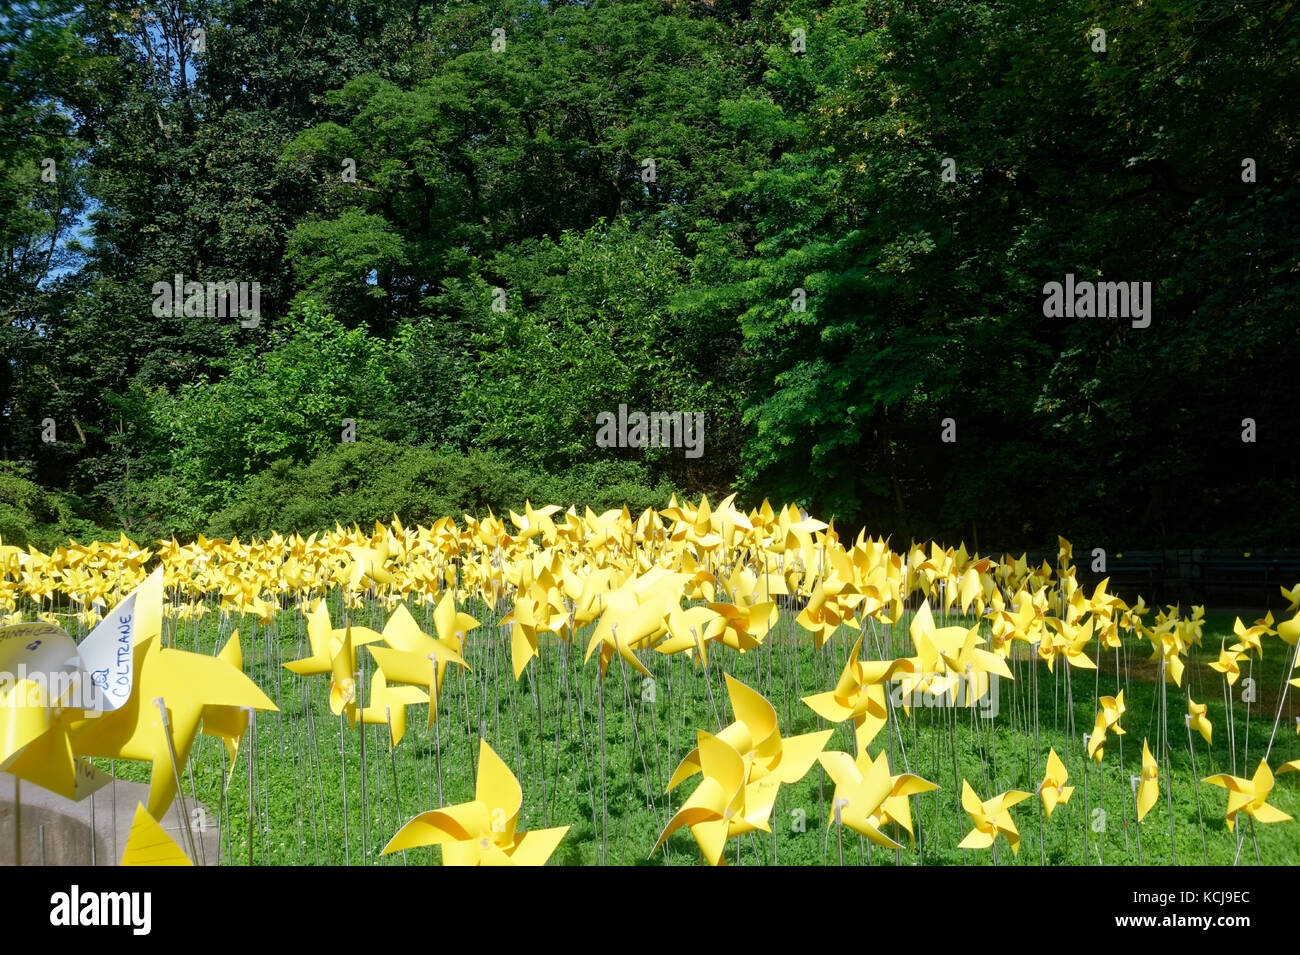 Thousands of yellow pinwheels displayed as an art installation in Prospect Park, Brooklyn to celebrate the 150th - Stock Image